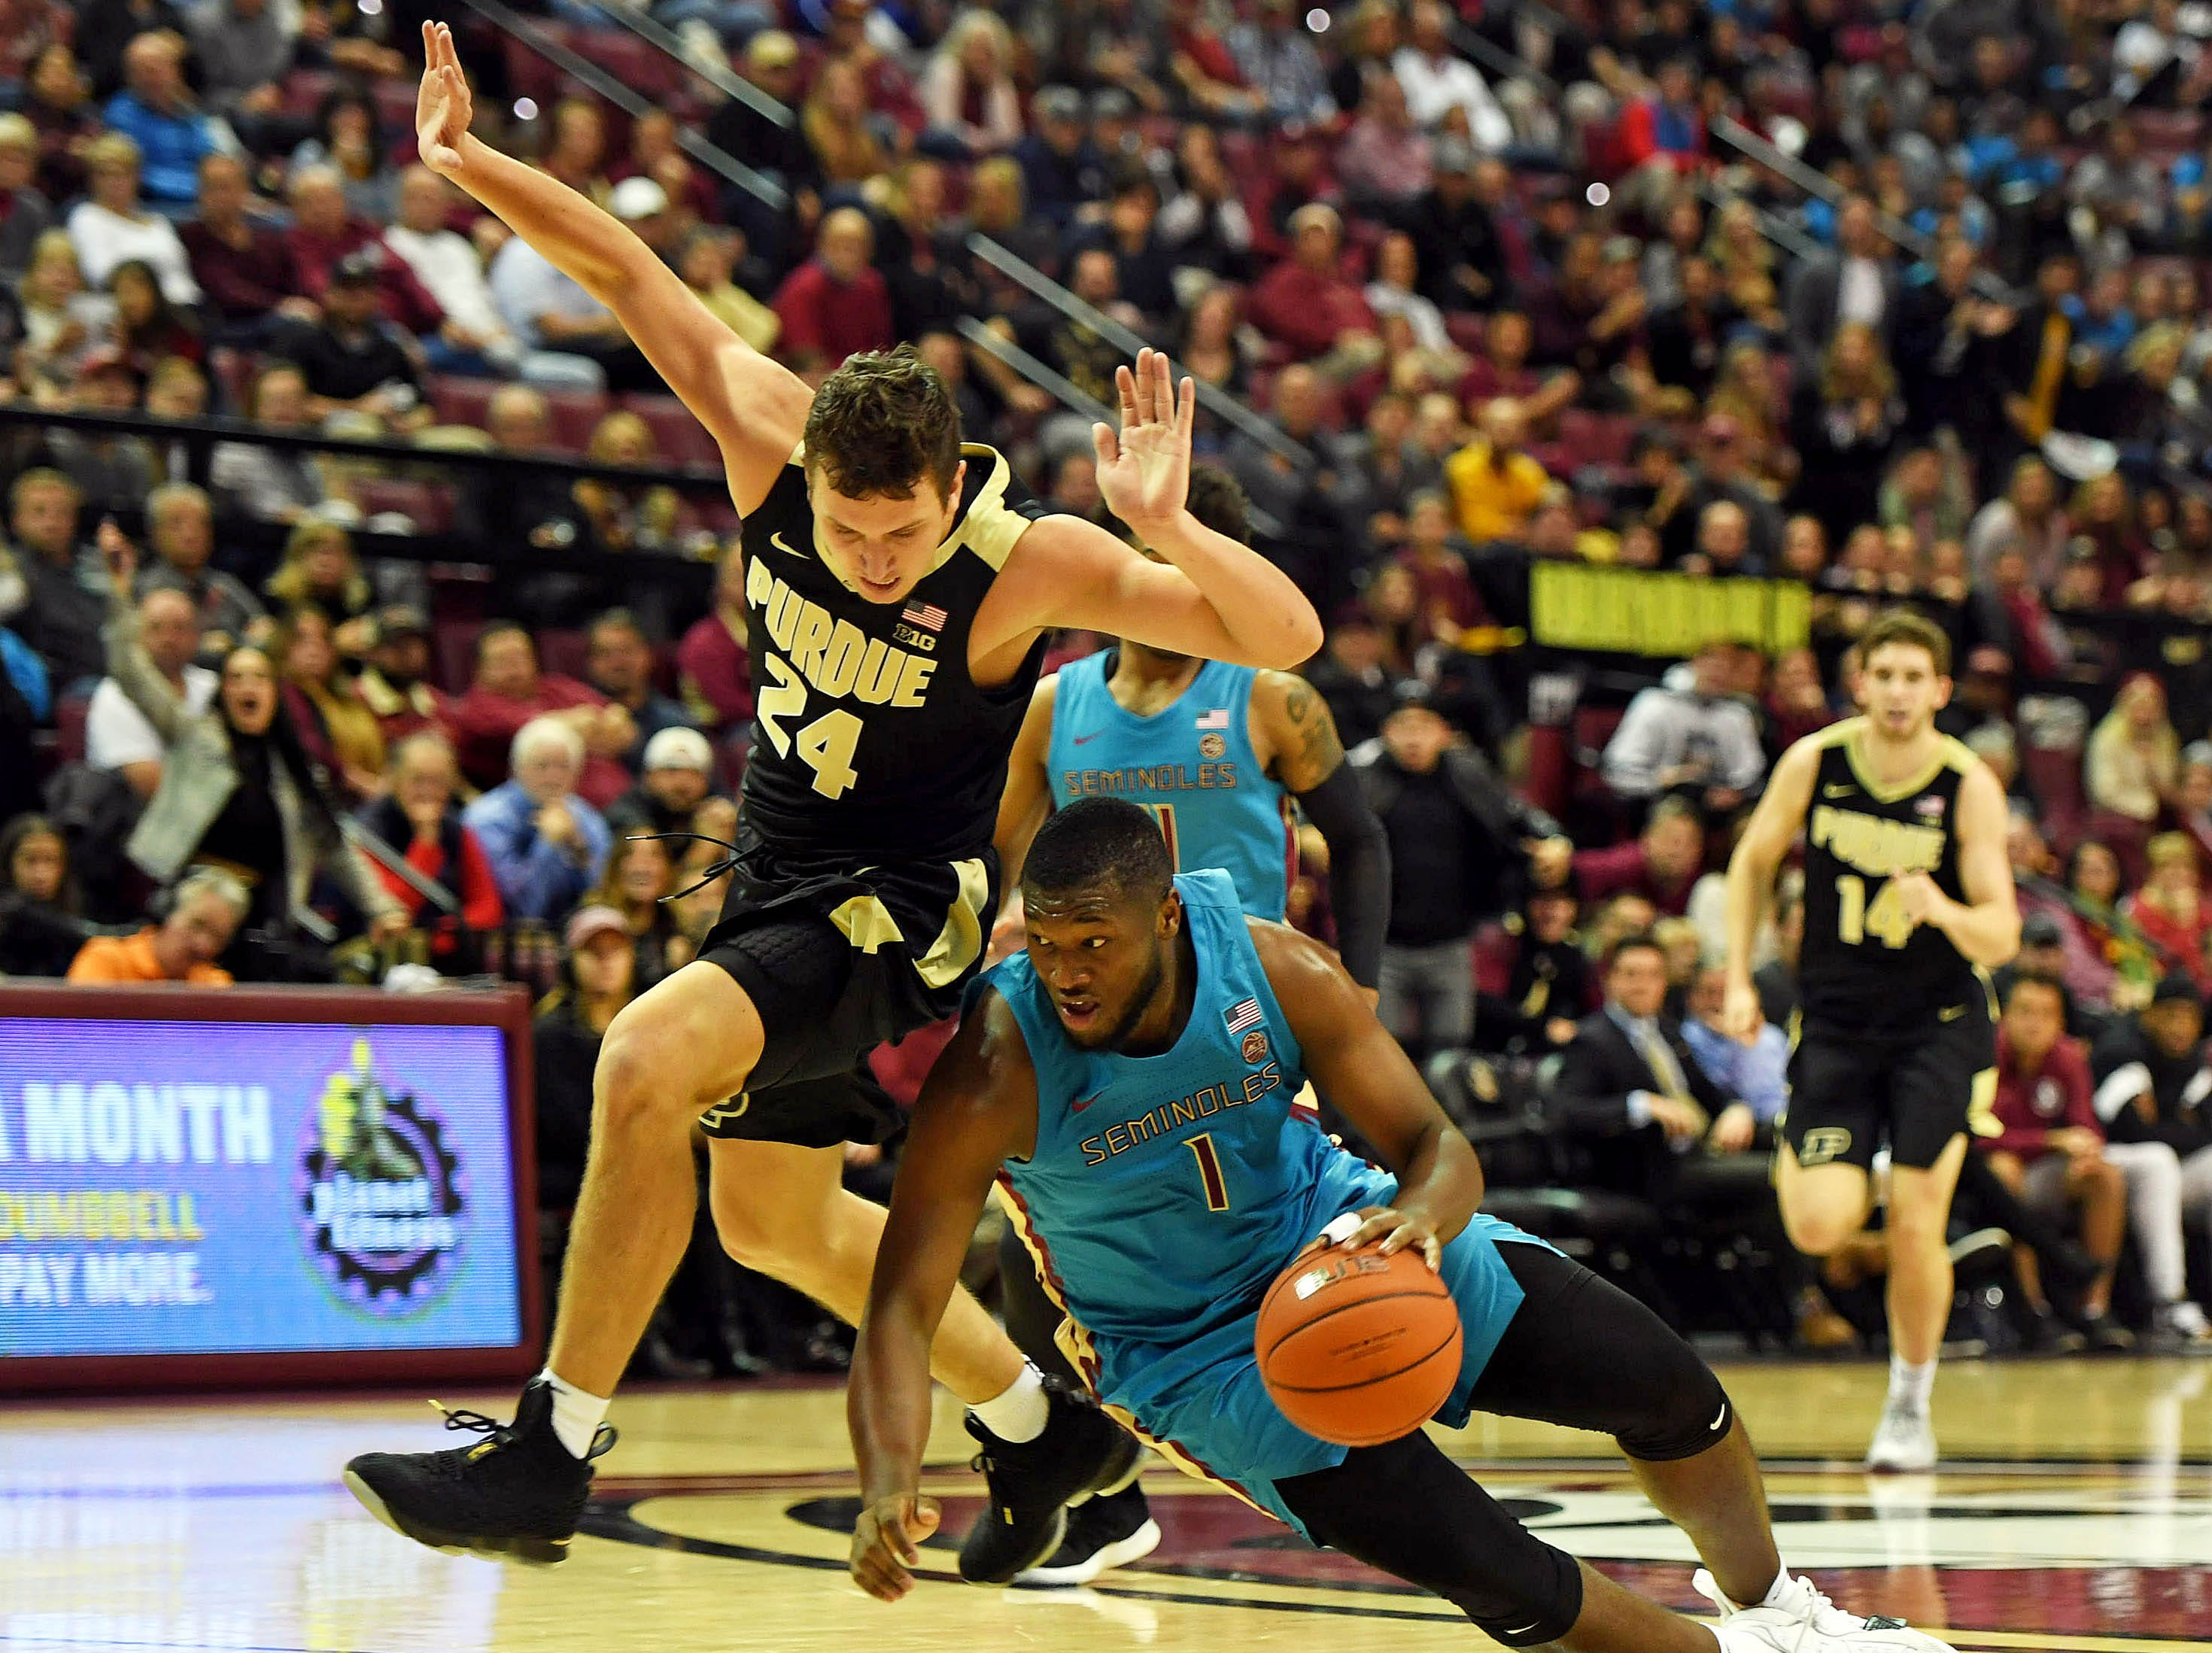 Nov 28, 2018; Tallahassee, FL, USA; Purdue Boilermakers forward Grady Eifert (24) and Florida State Seminoles forward Raiquan Gray (1) fight for a loose ball during the second half at Donald L. Tucker Center. Mandatory Credit: Melina Myers-USA TODAY Sports